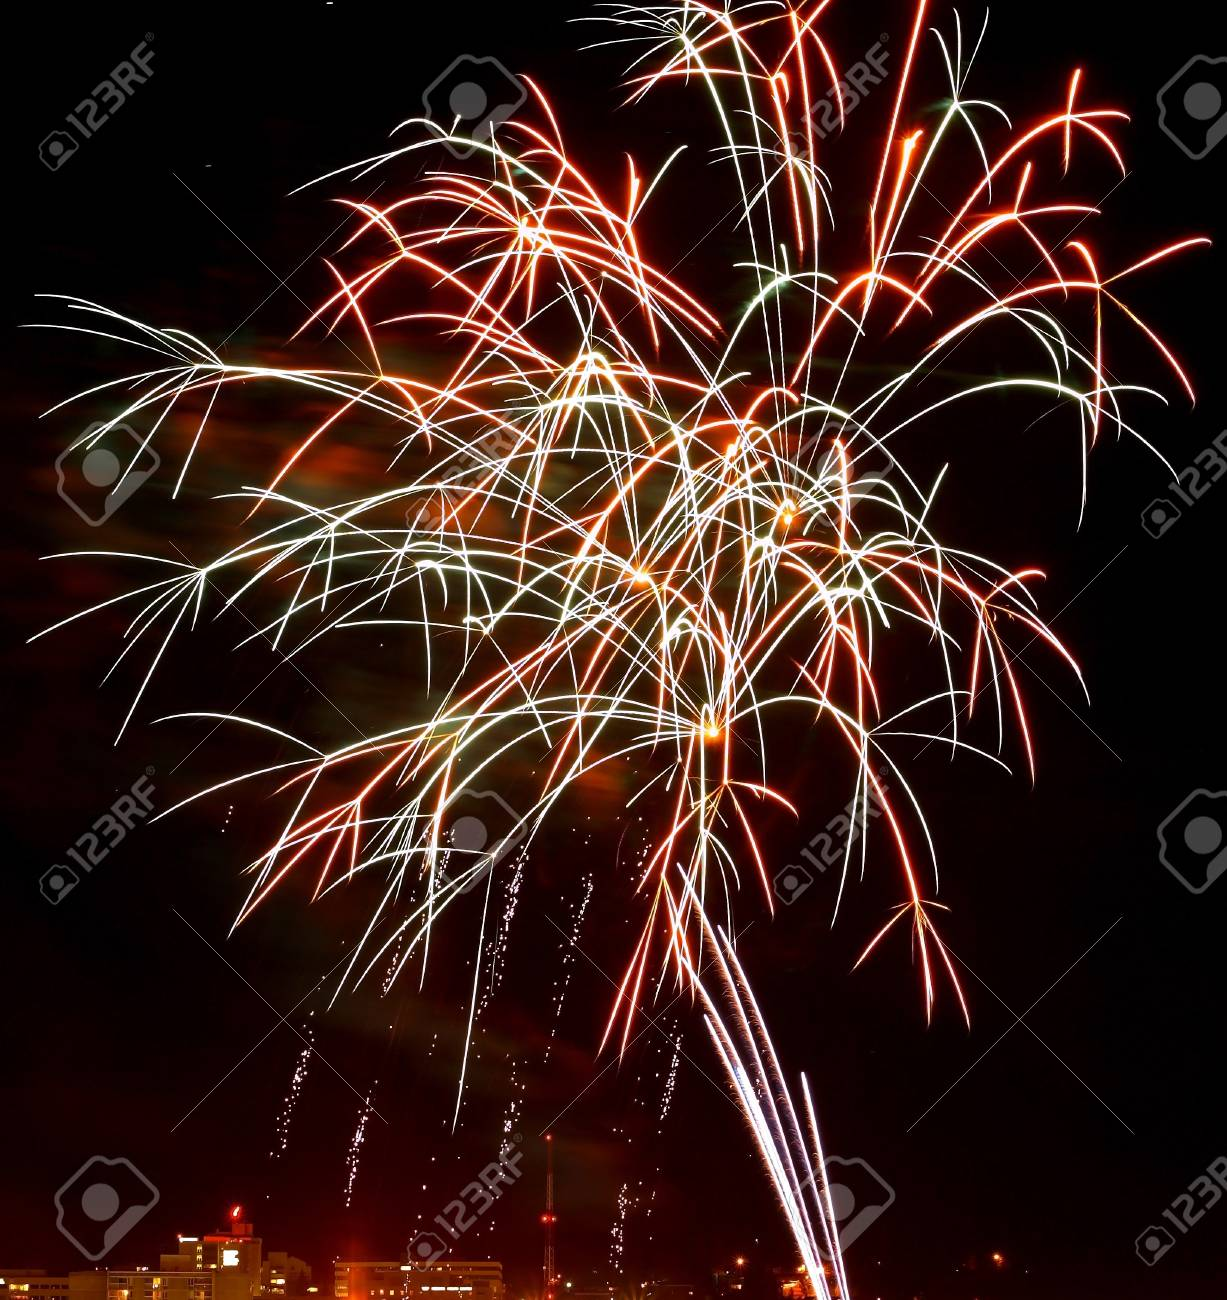 Fireworks Against the Night Sky of a Cityscape Stock Photo - 11075315